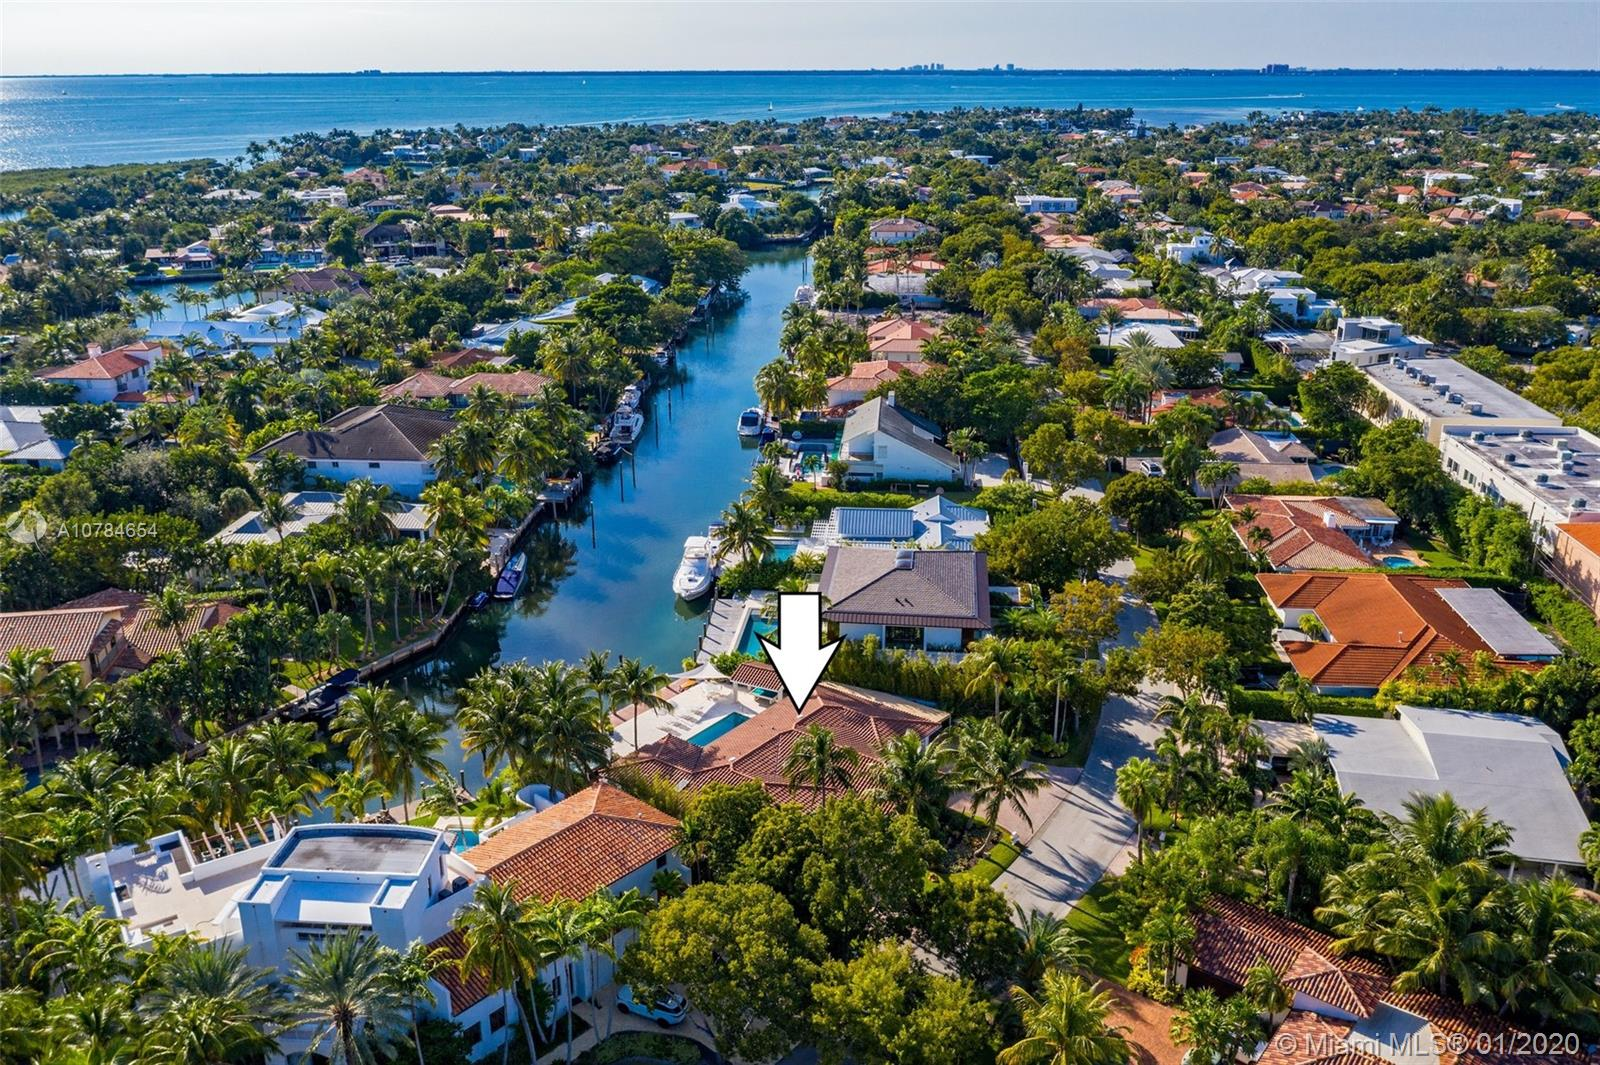 110 Island Dr, one of homes for sale in Key Biscayne